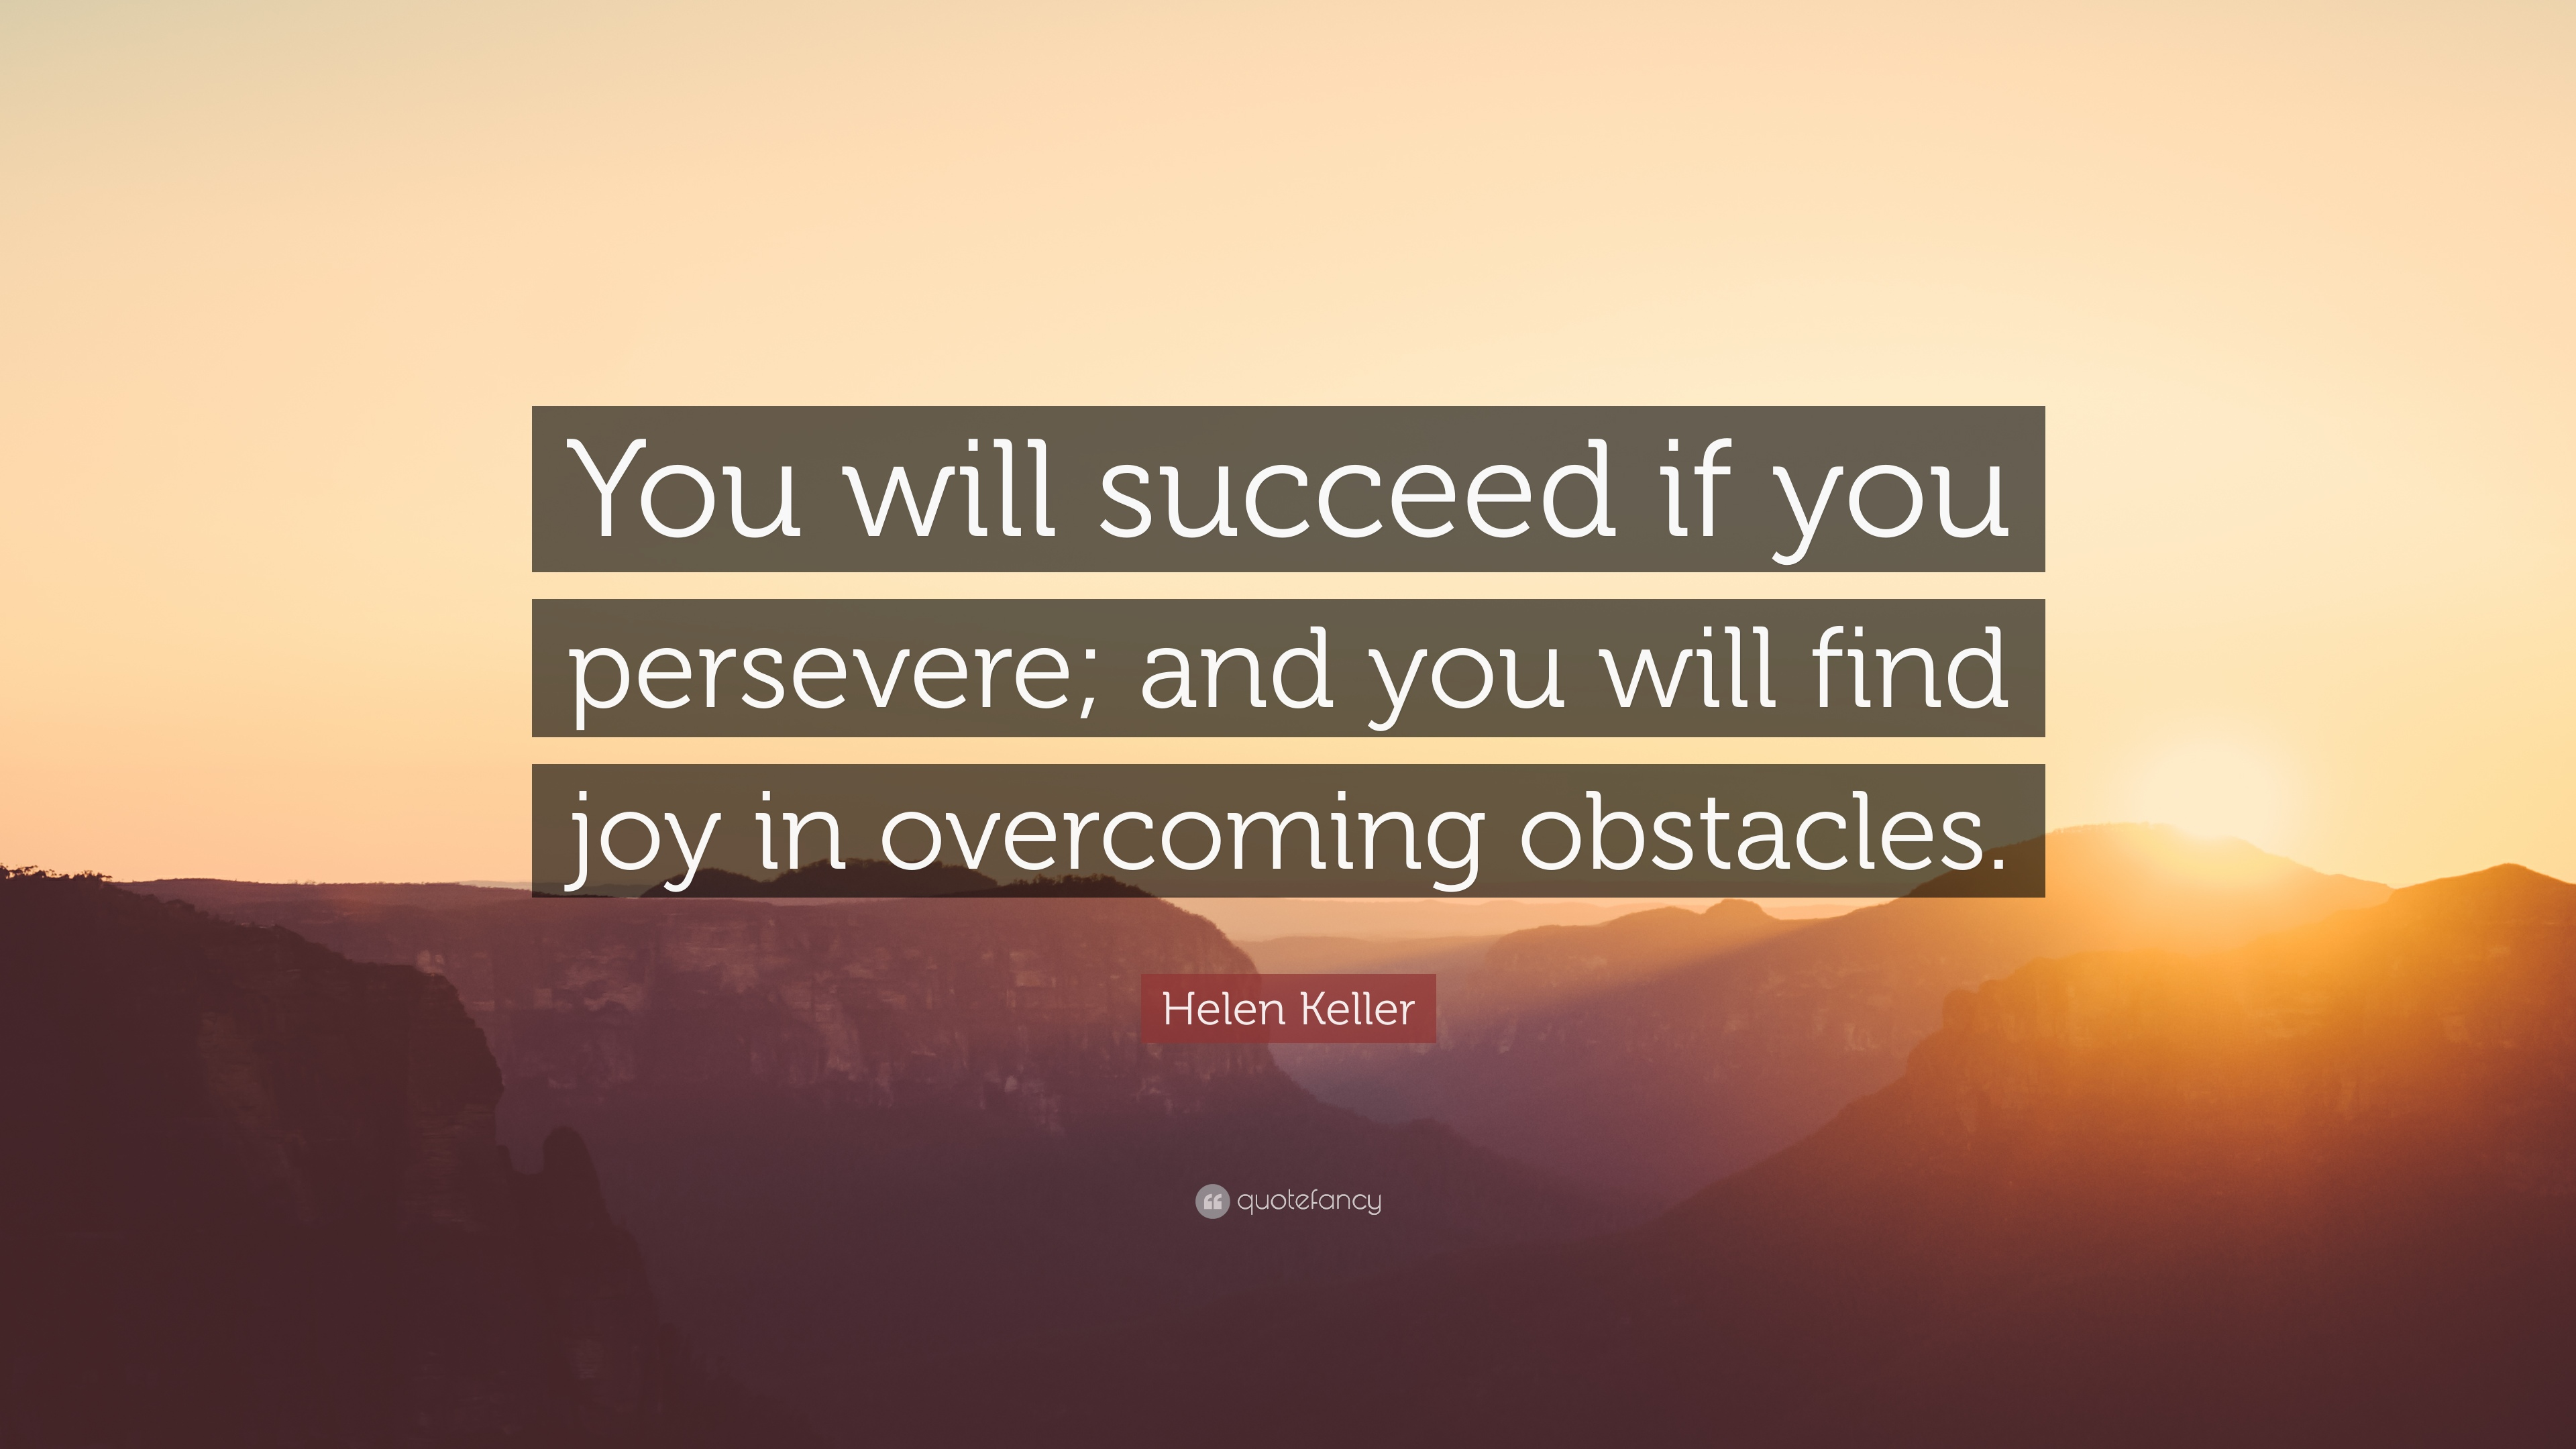 Overcoming Obstacles Quotes | Helen Keller Quote You Will Succeed If You Persevere And You Will